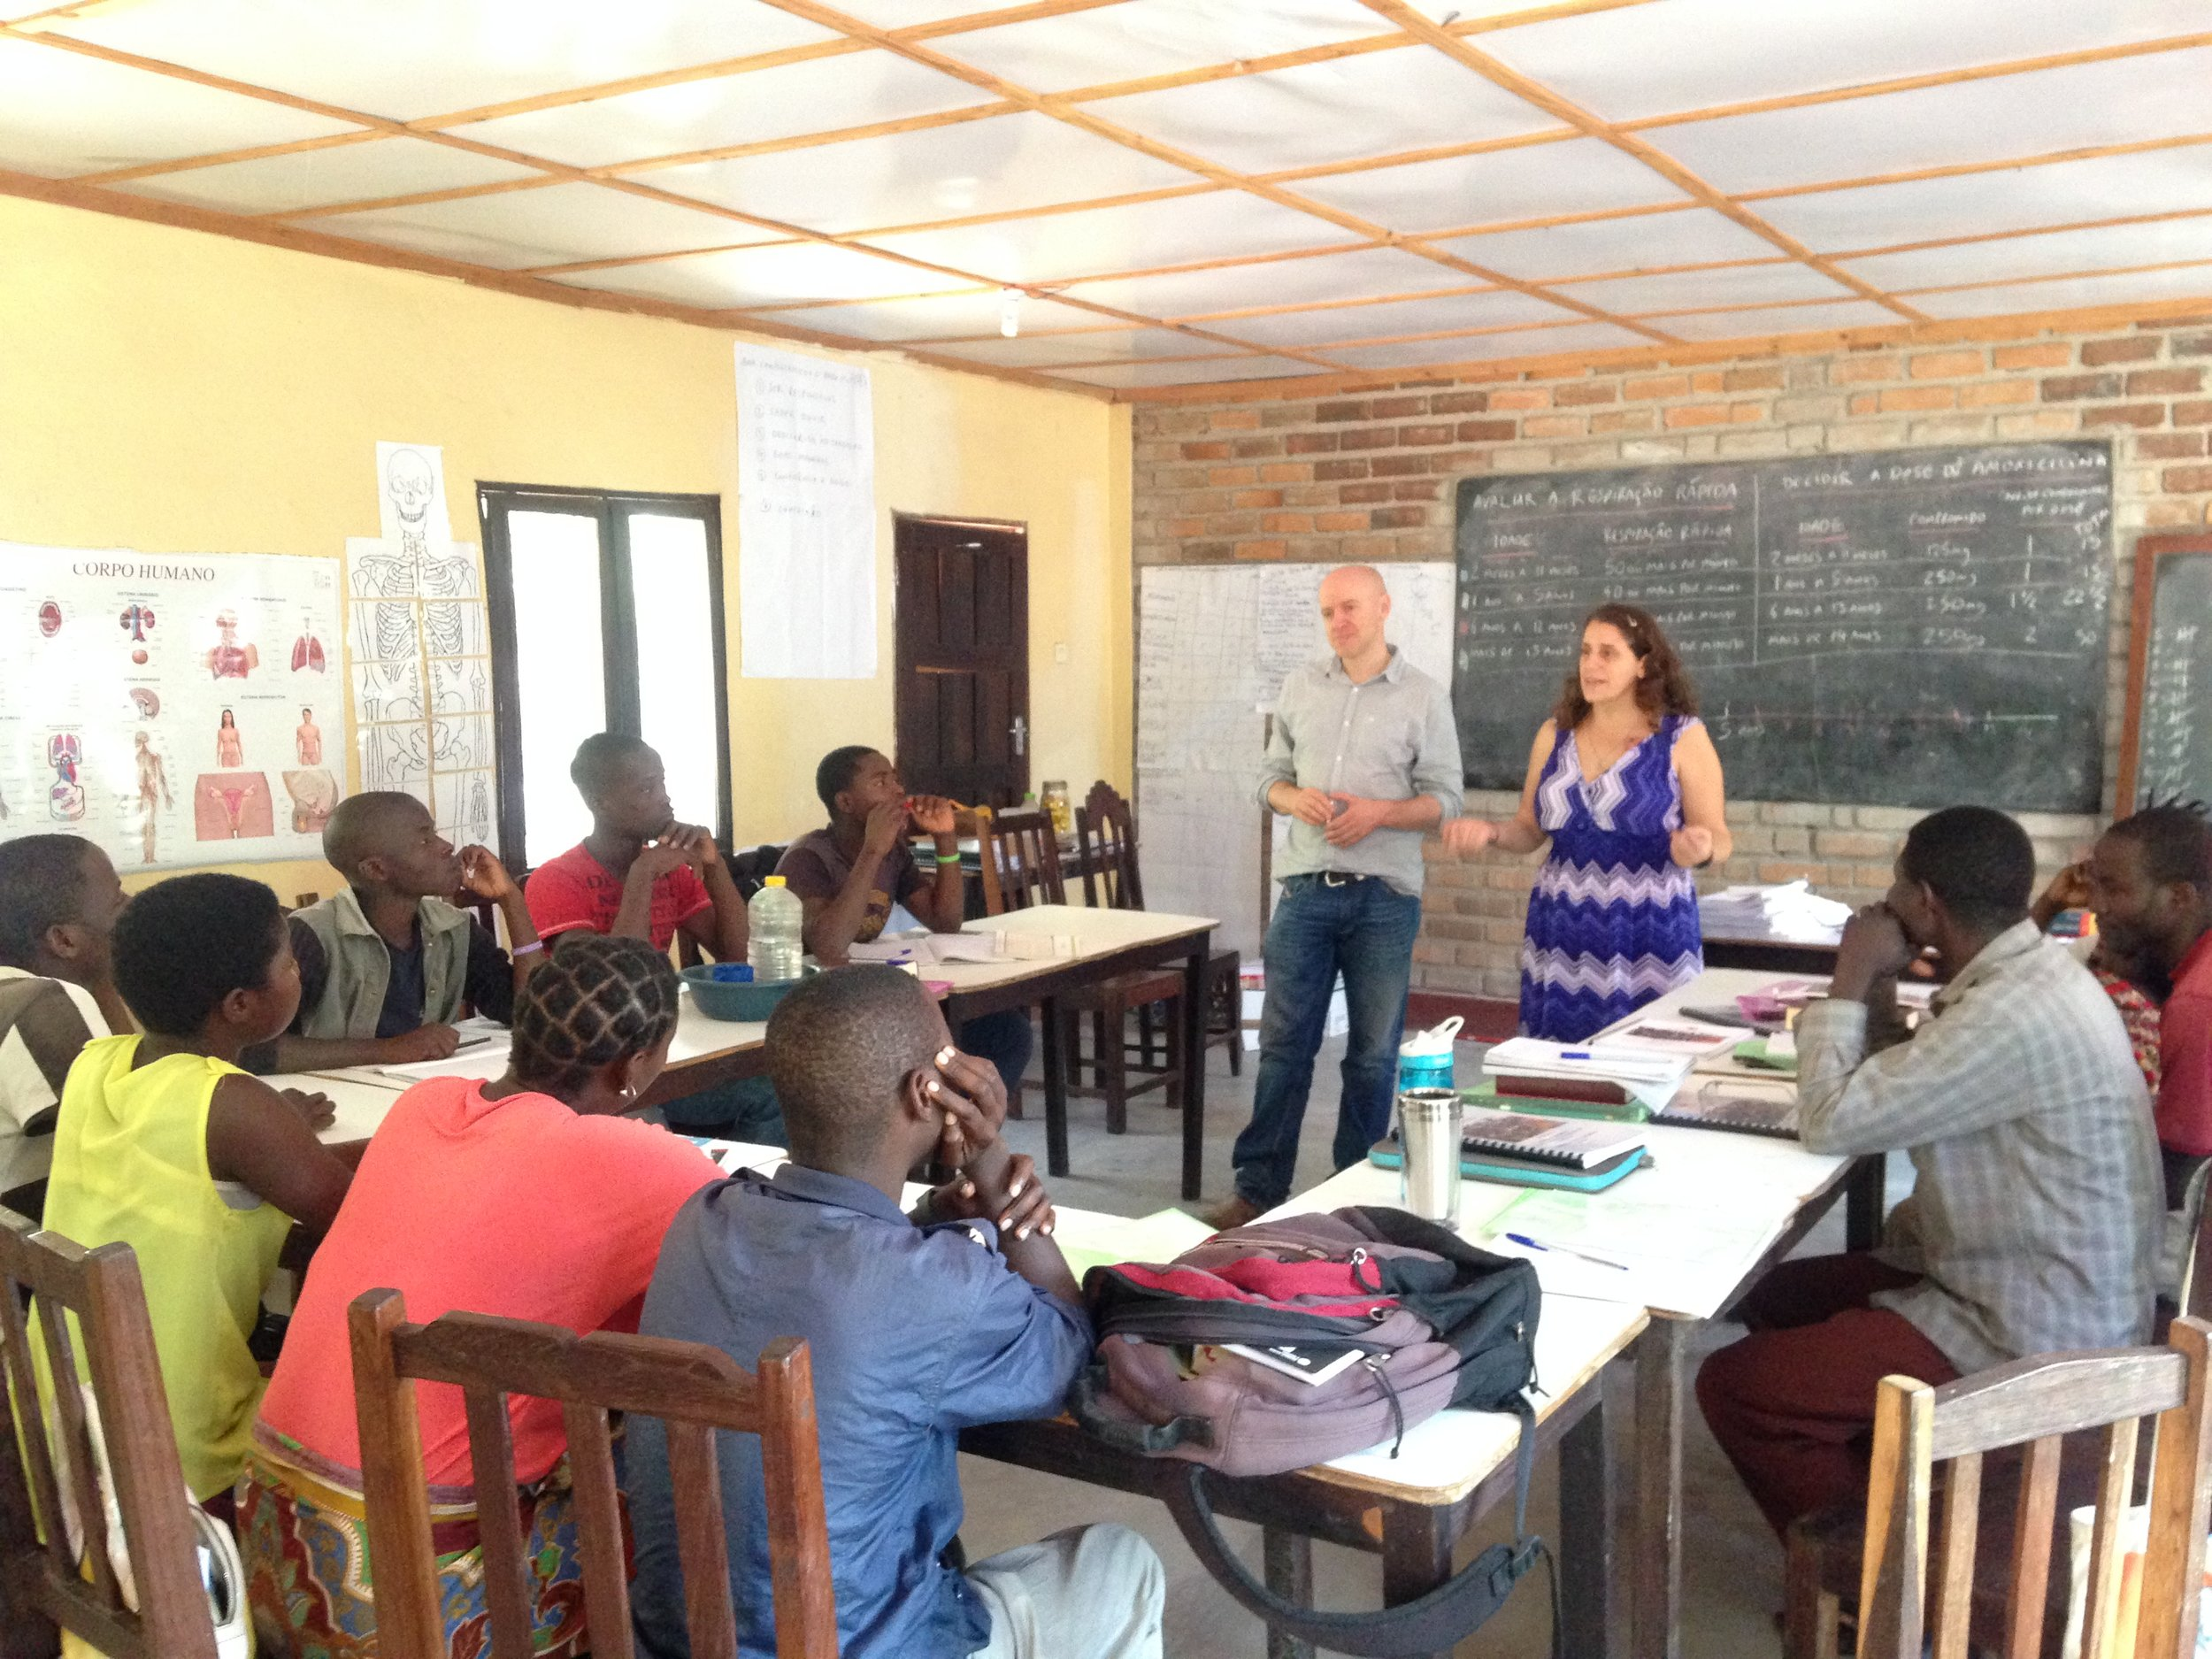 DISCIPLESHIP TRAINING SCHOOL - We run a 6 month residential training course for those who wish to learn more about following Jesus. It is also an entry course for those wishing to join YWAM. It has a lecture phase and a practical phase empowering students to apply all they have learned.$50 a month can help us feed, transport and teach a student.Annual goal $4000